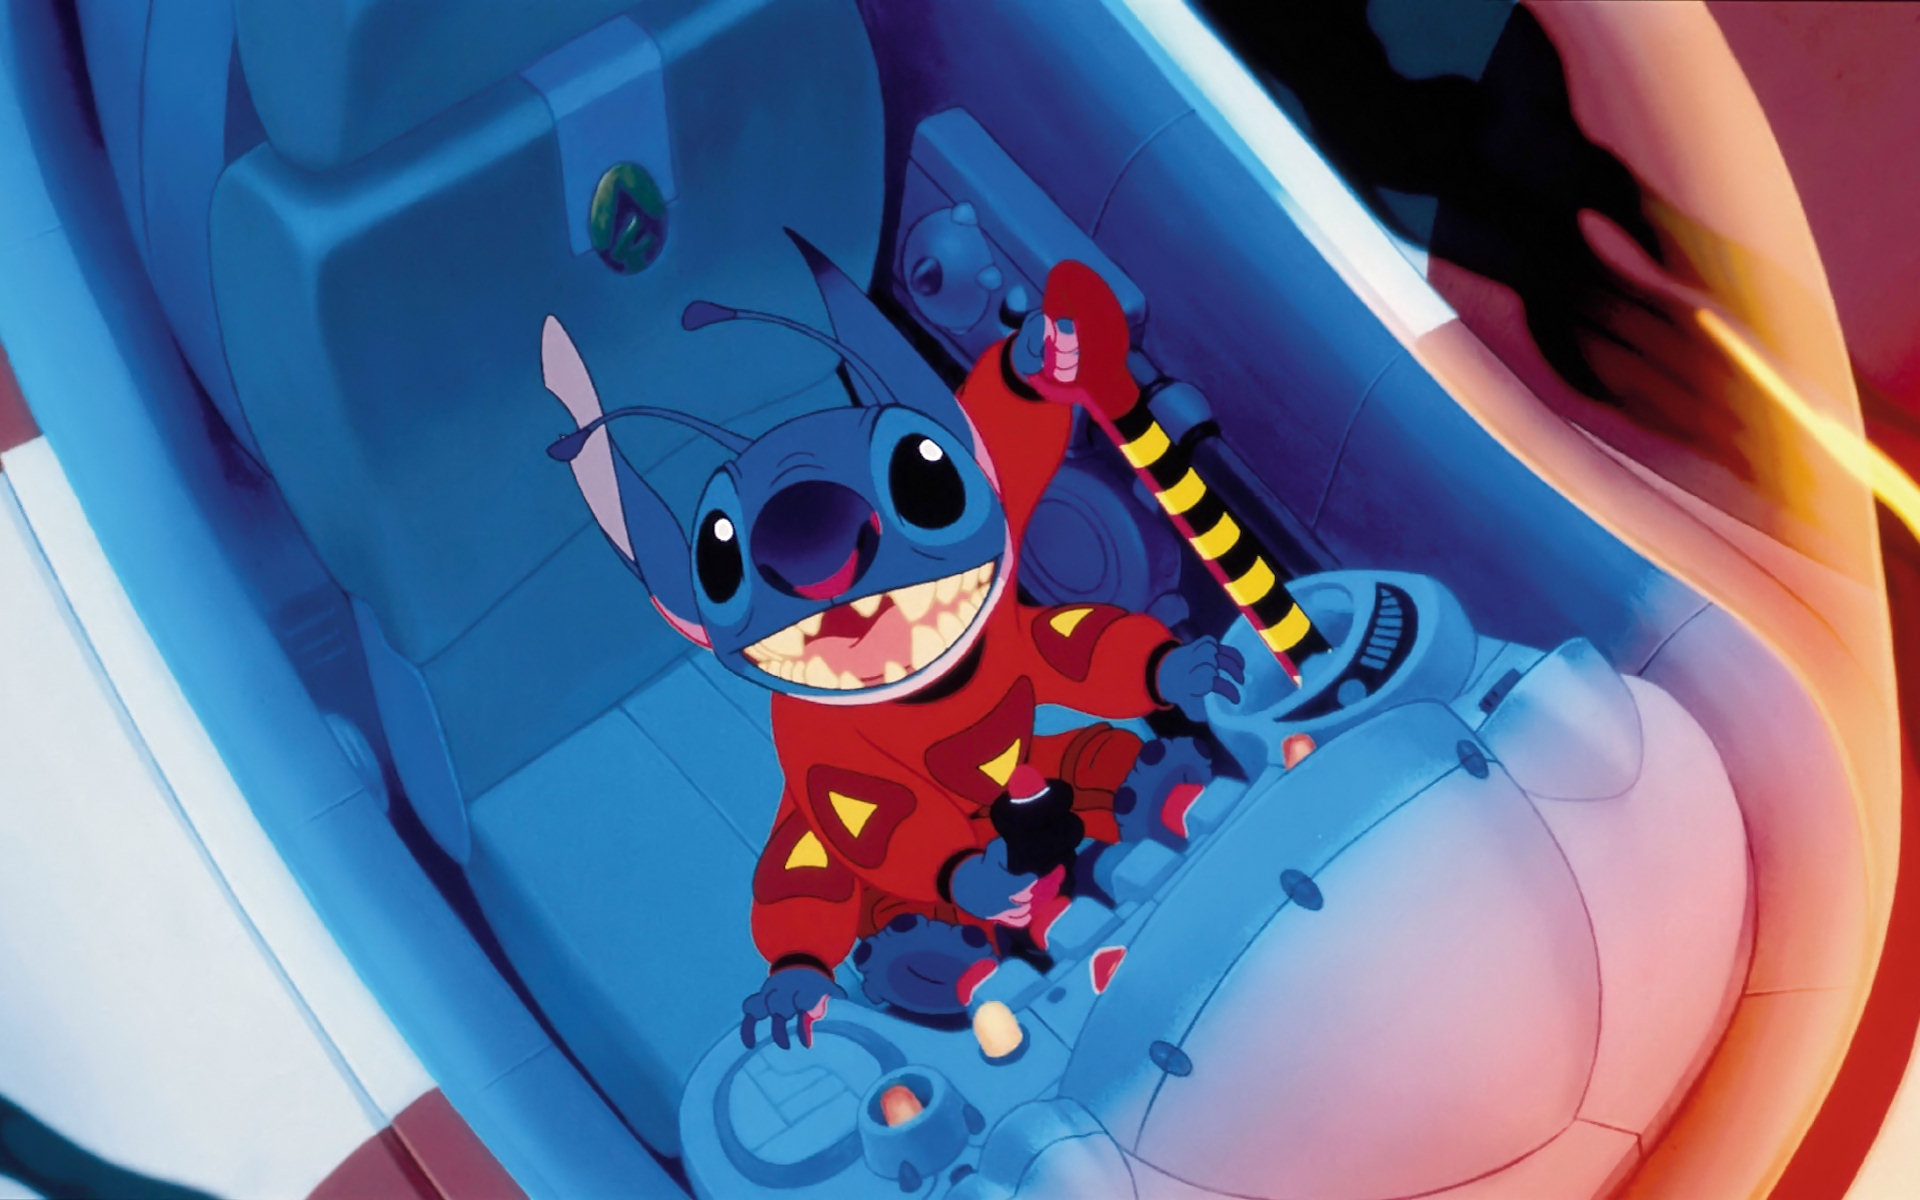 Lilo and Stitch Wallpaper HD for IPhone and Android   iPhone2Lovely 1920x1200